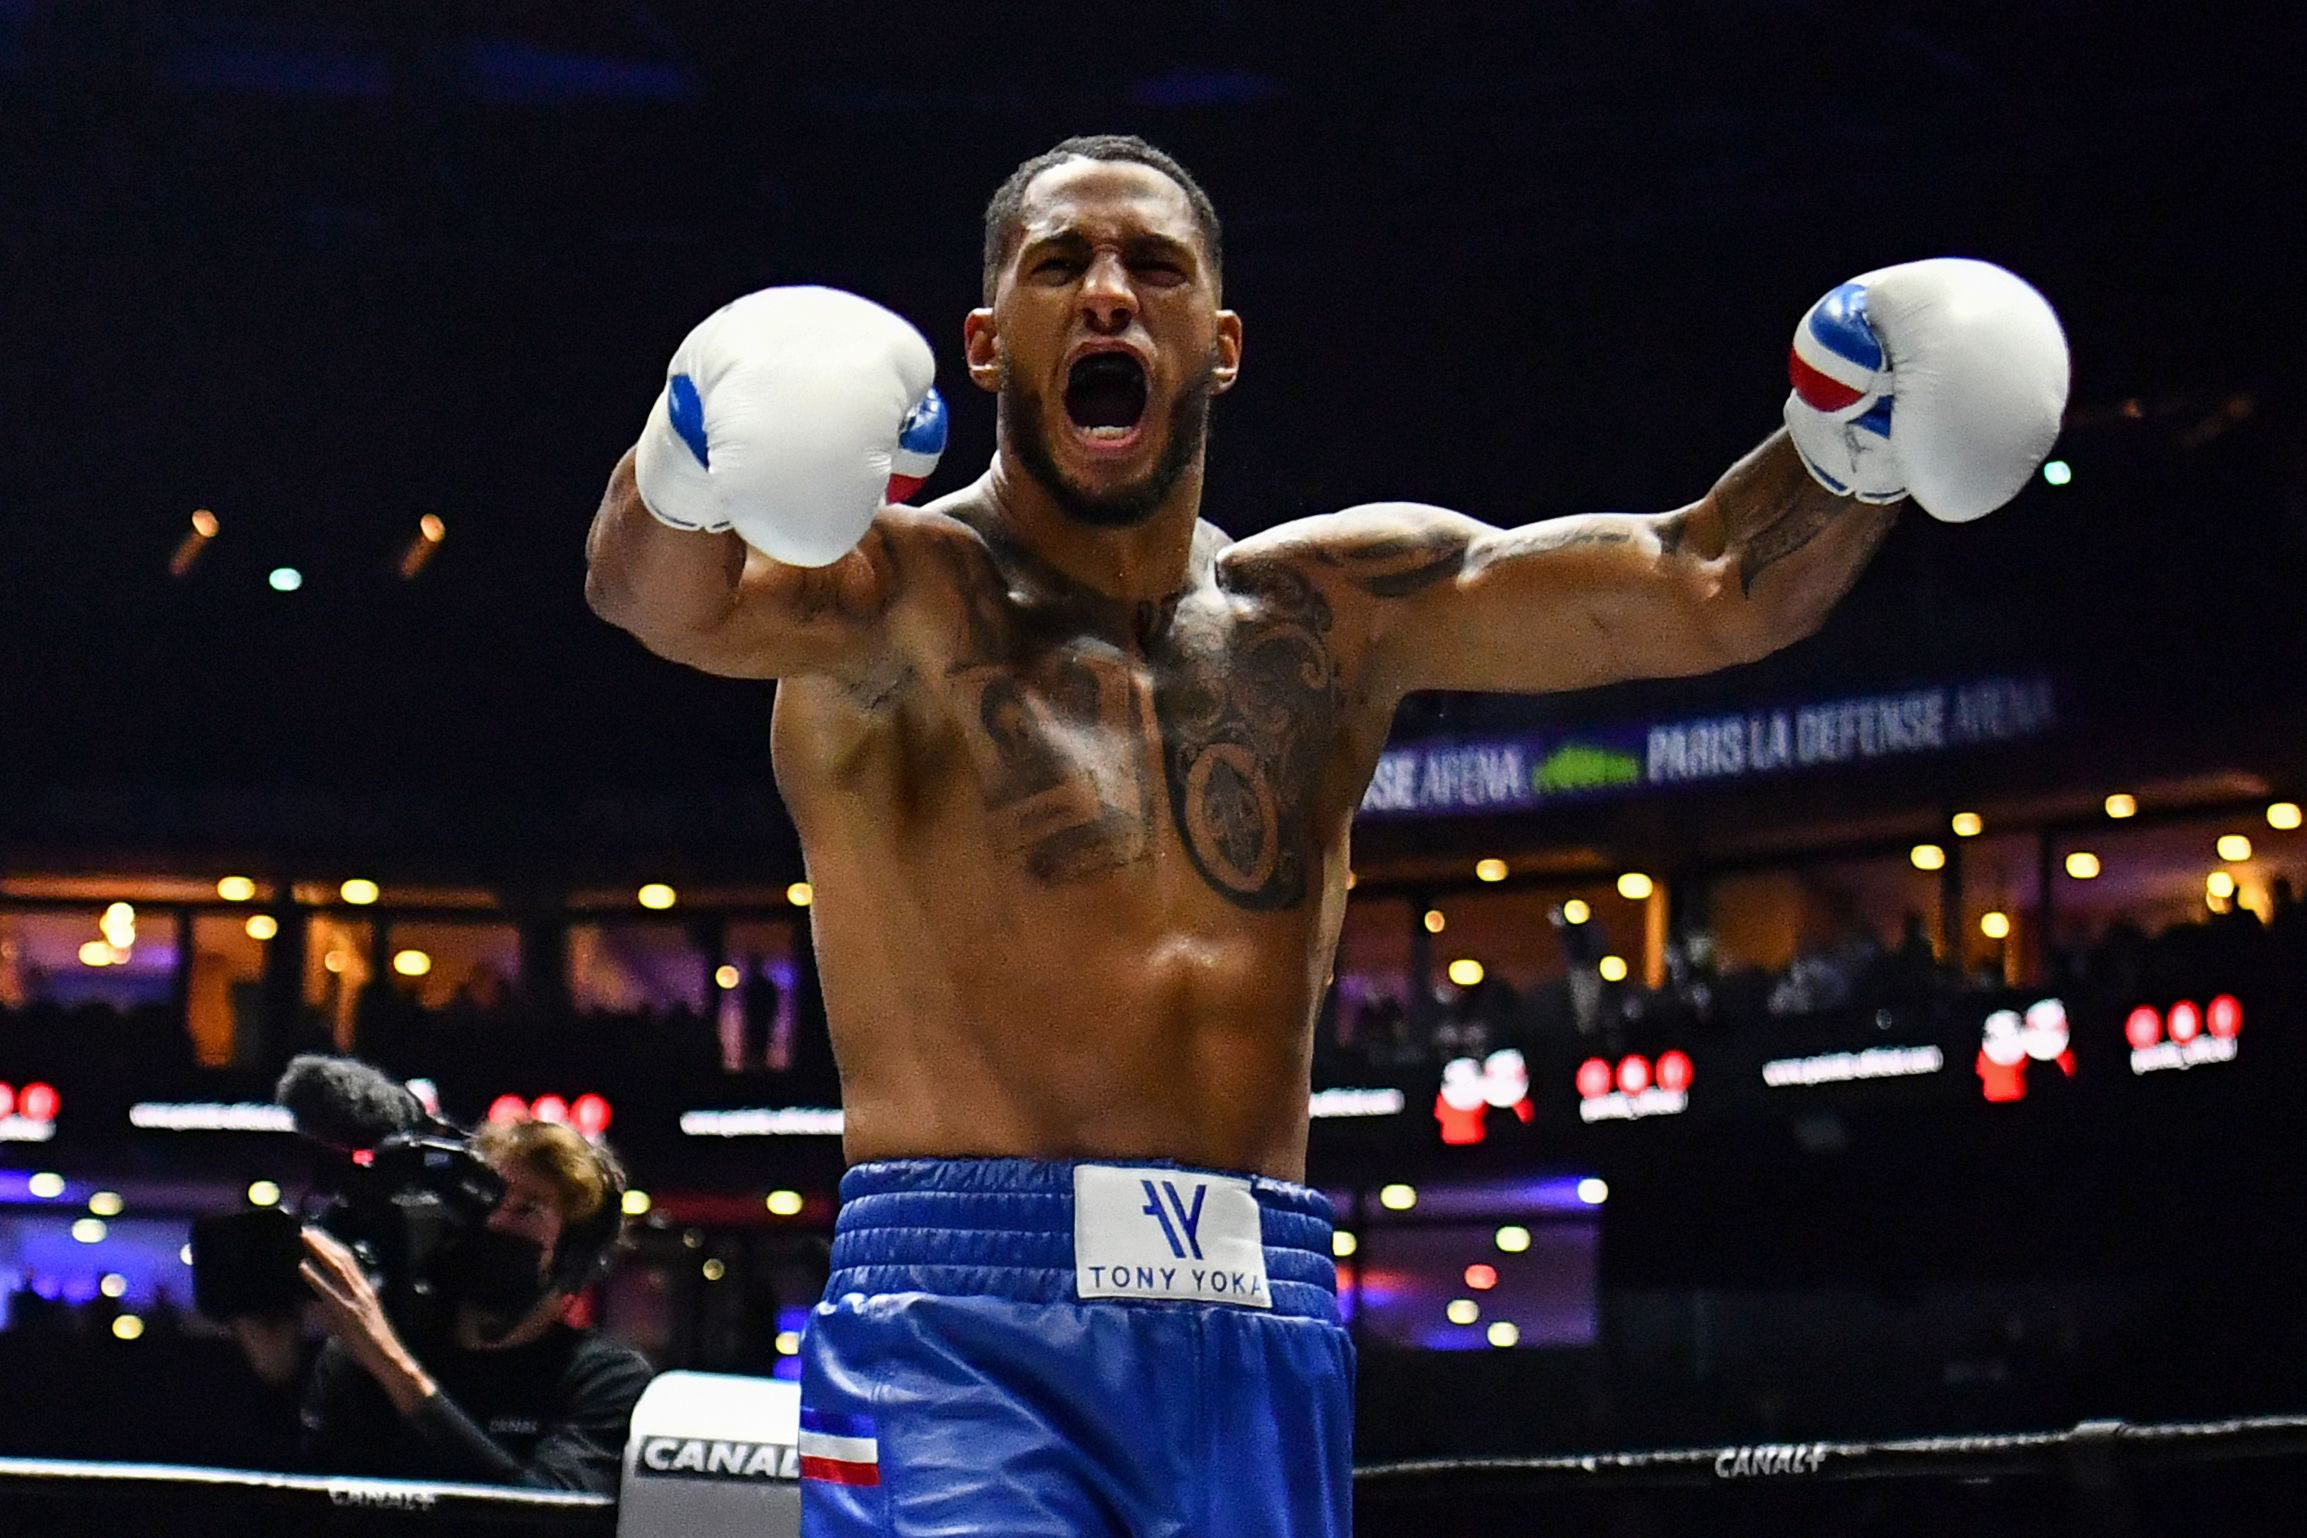 French boxer Tony Yoka celebrates after winning the International Heavyweight 12-round boxing bout in Nanterre, near Paris, on September 25, 2020. (Photo by FRANCK FIFE / AFP)